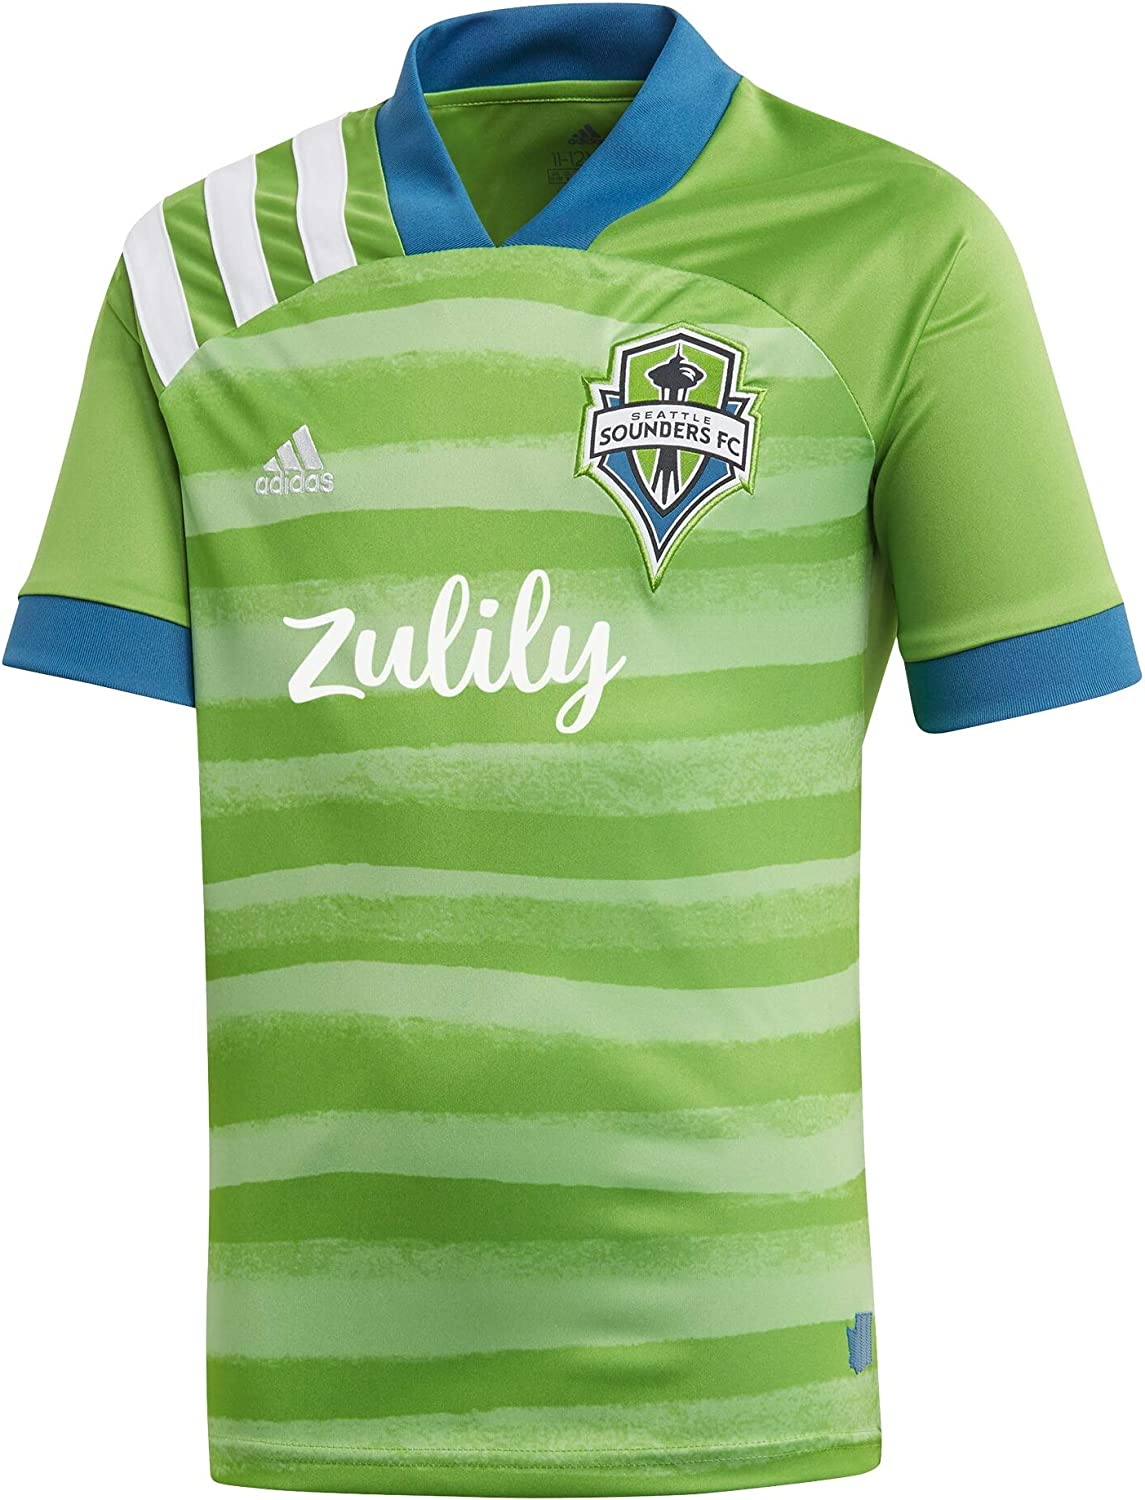 sounders jersey youth